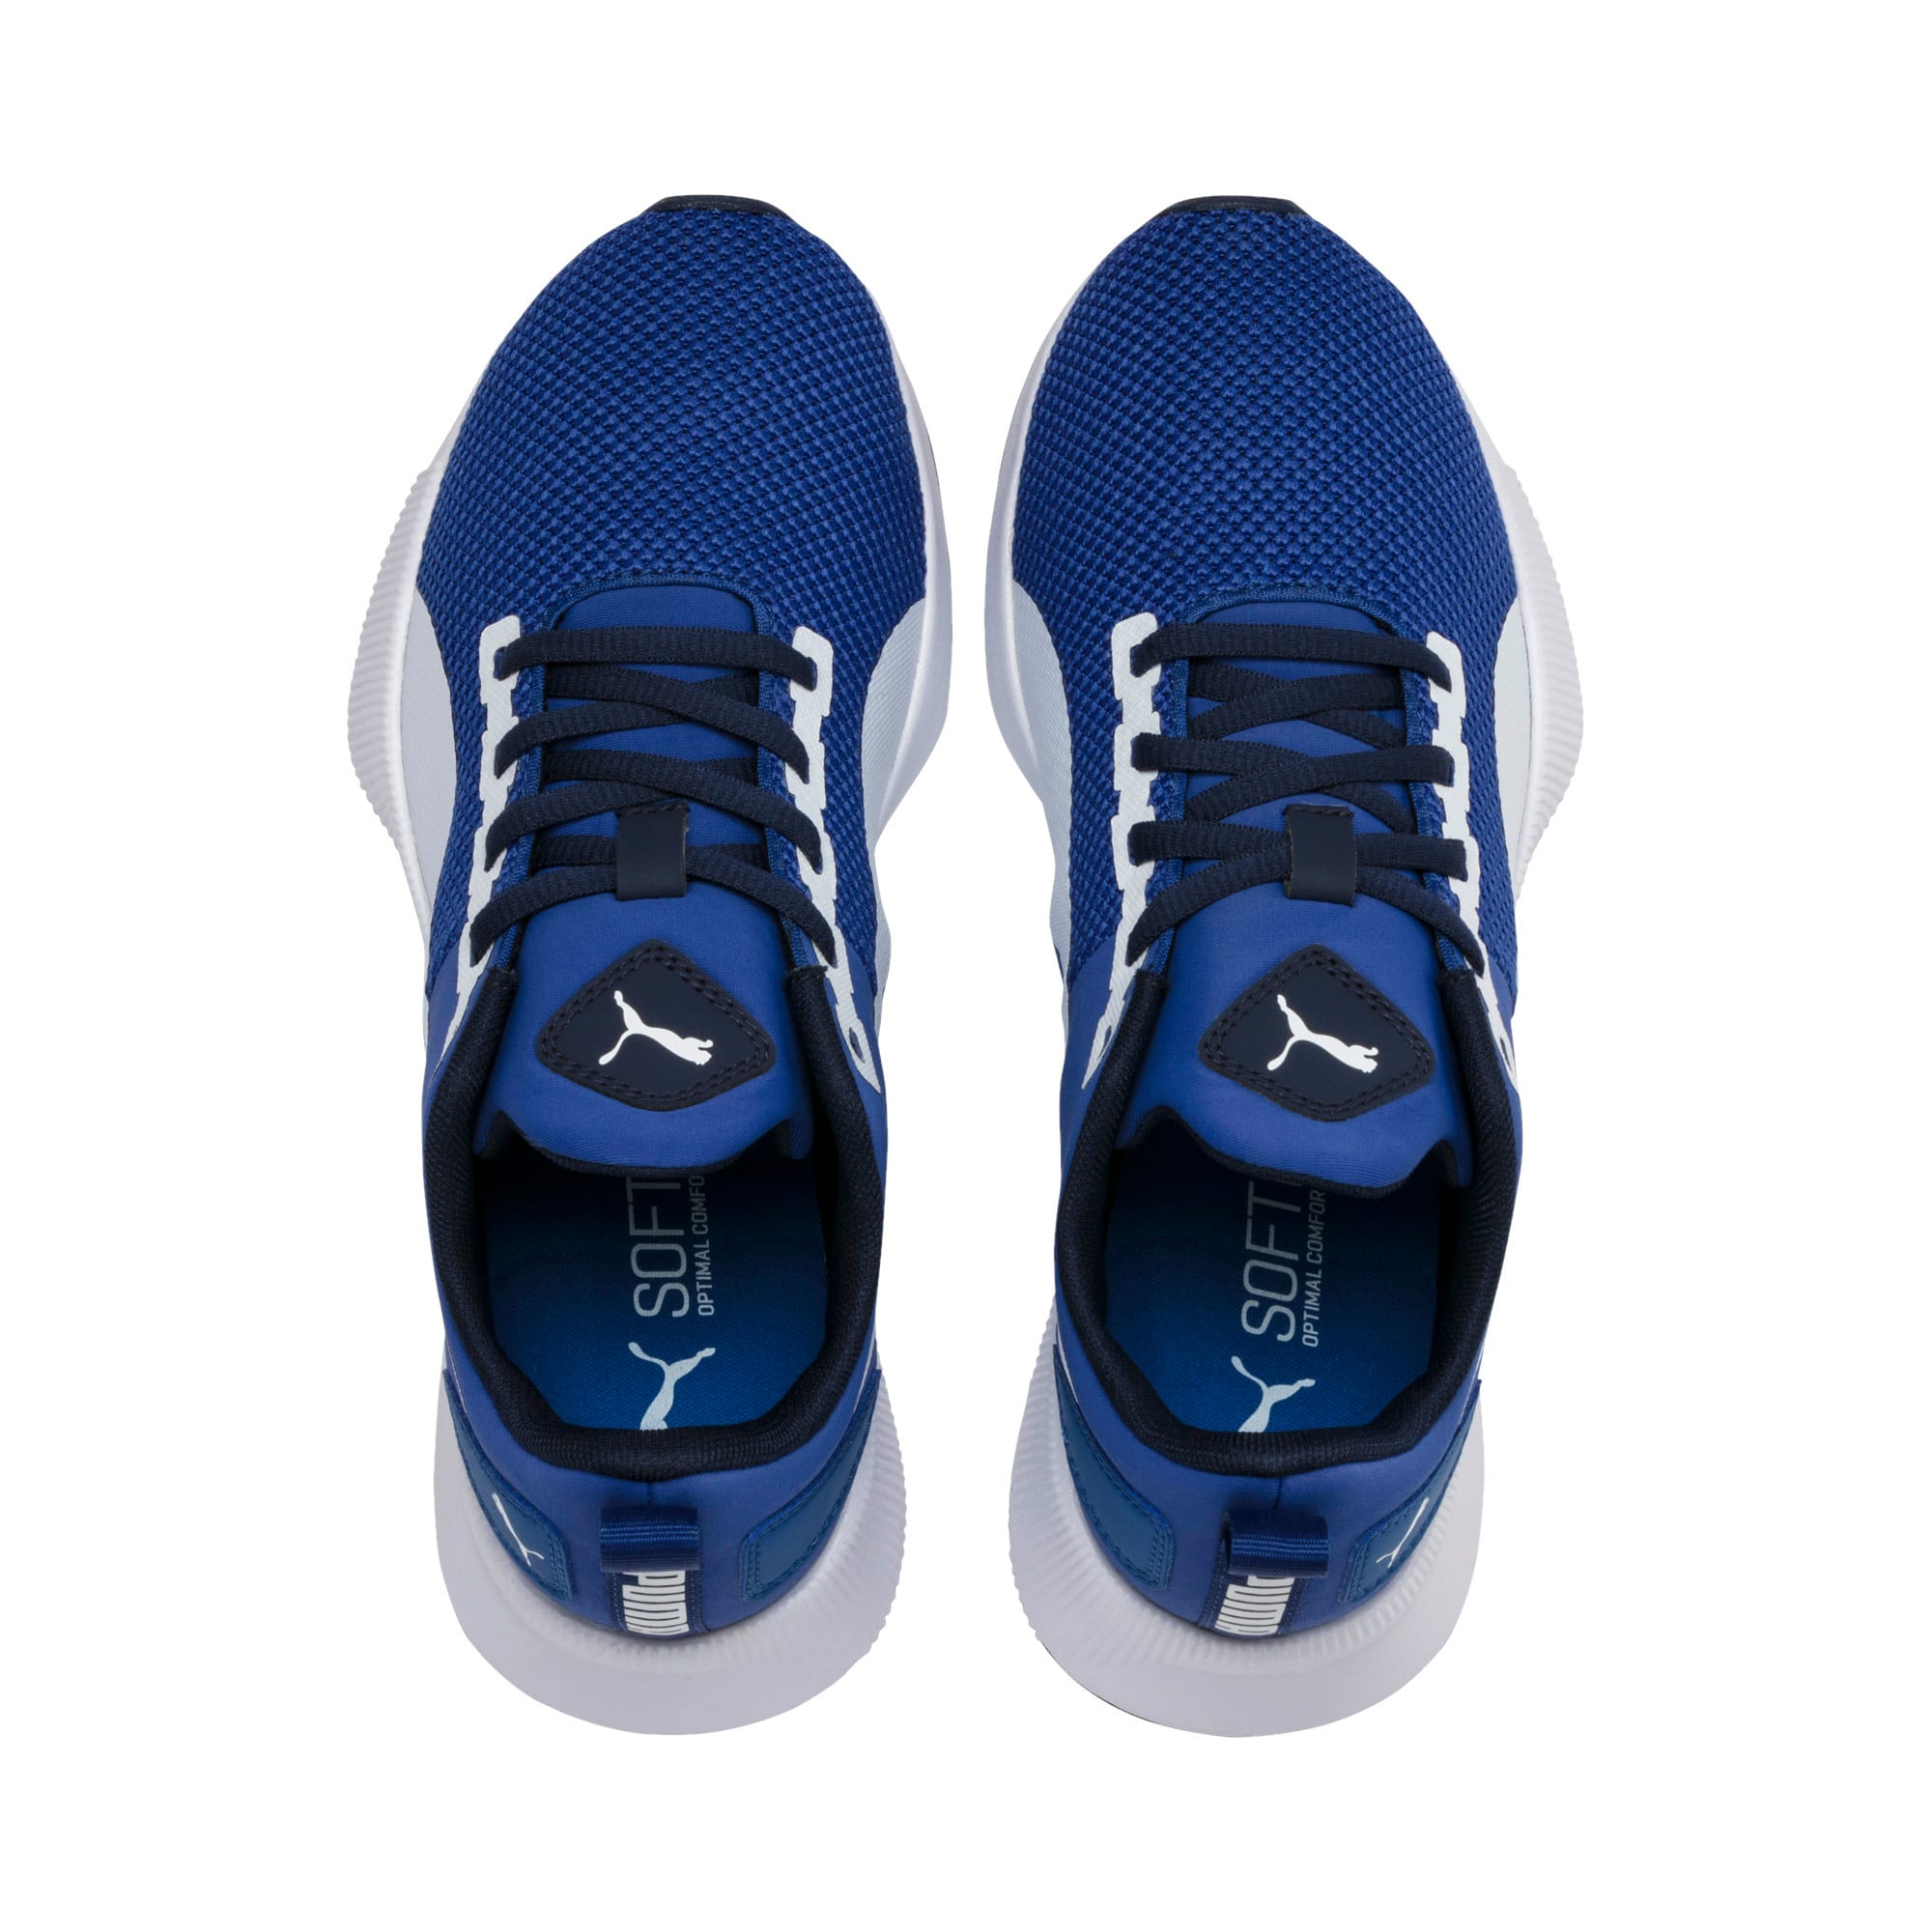 Thumbnail 6 of Flyer Runner Youth Trainers, Galaxy Blue-White-Peacoat, medium-IND